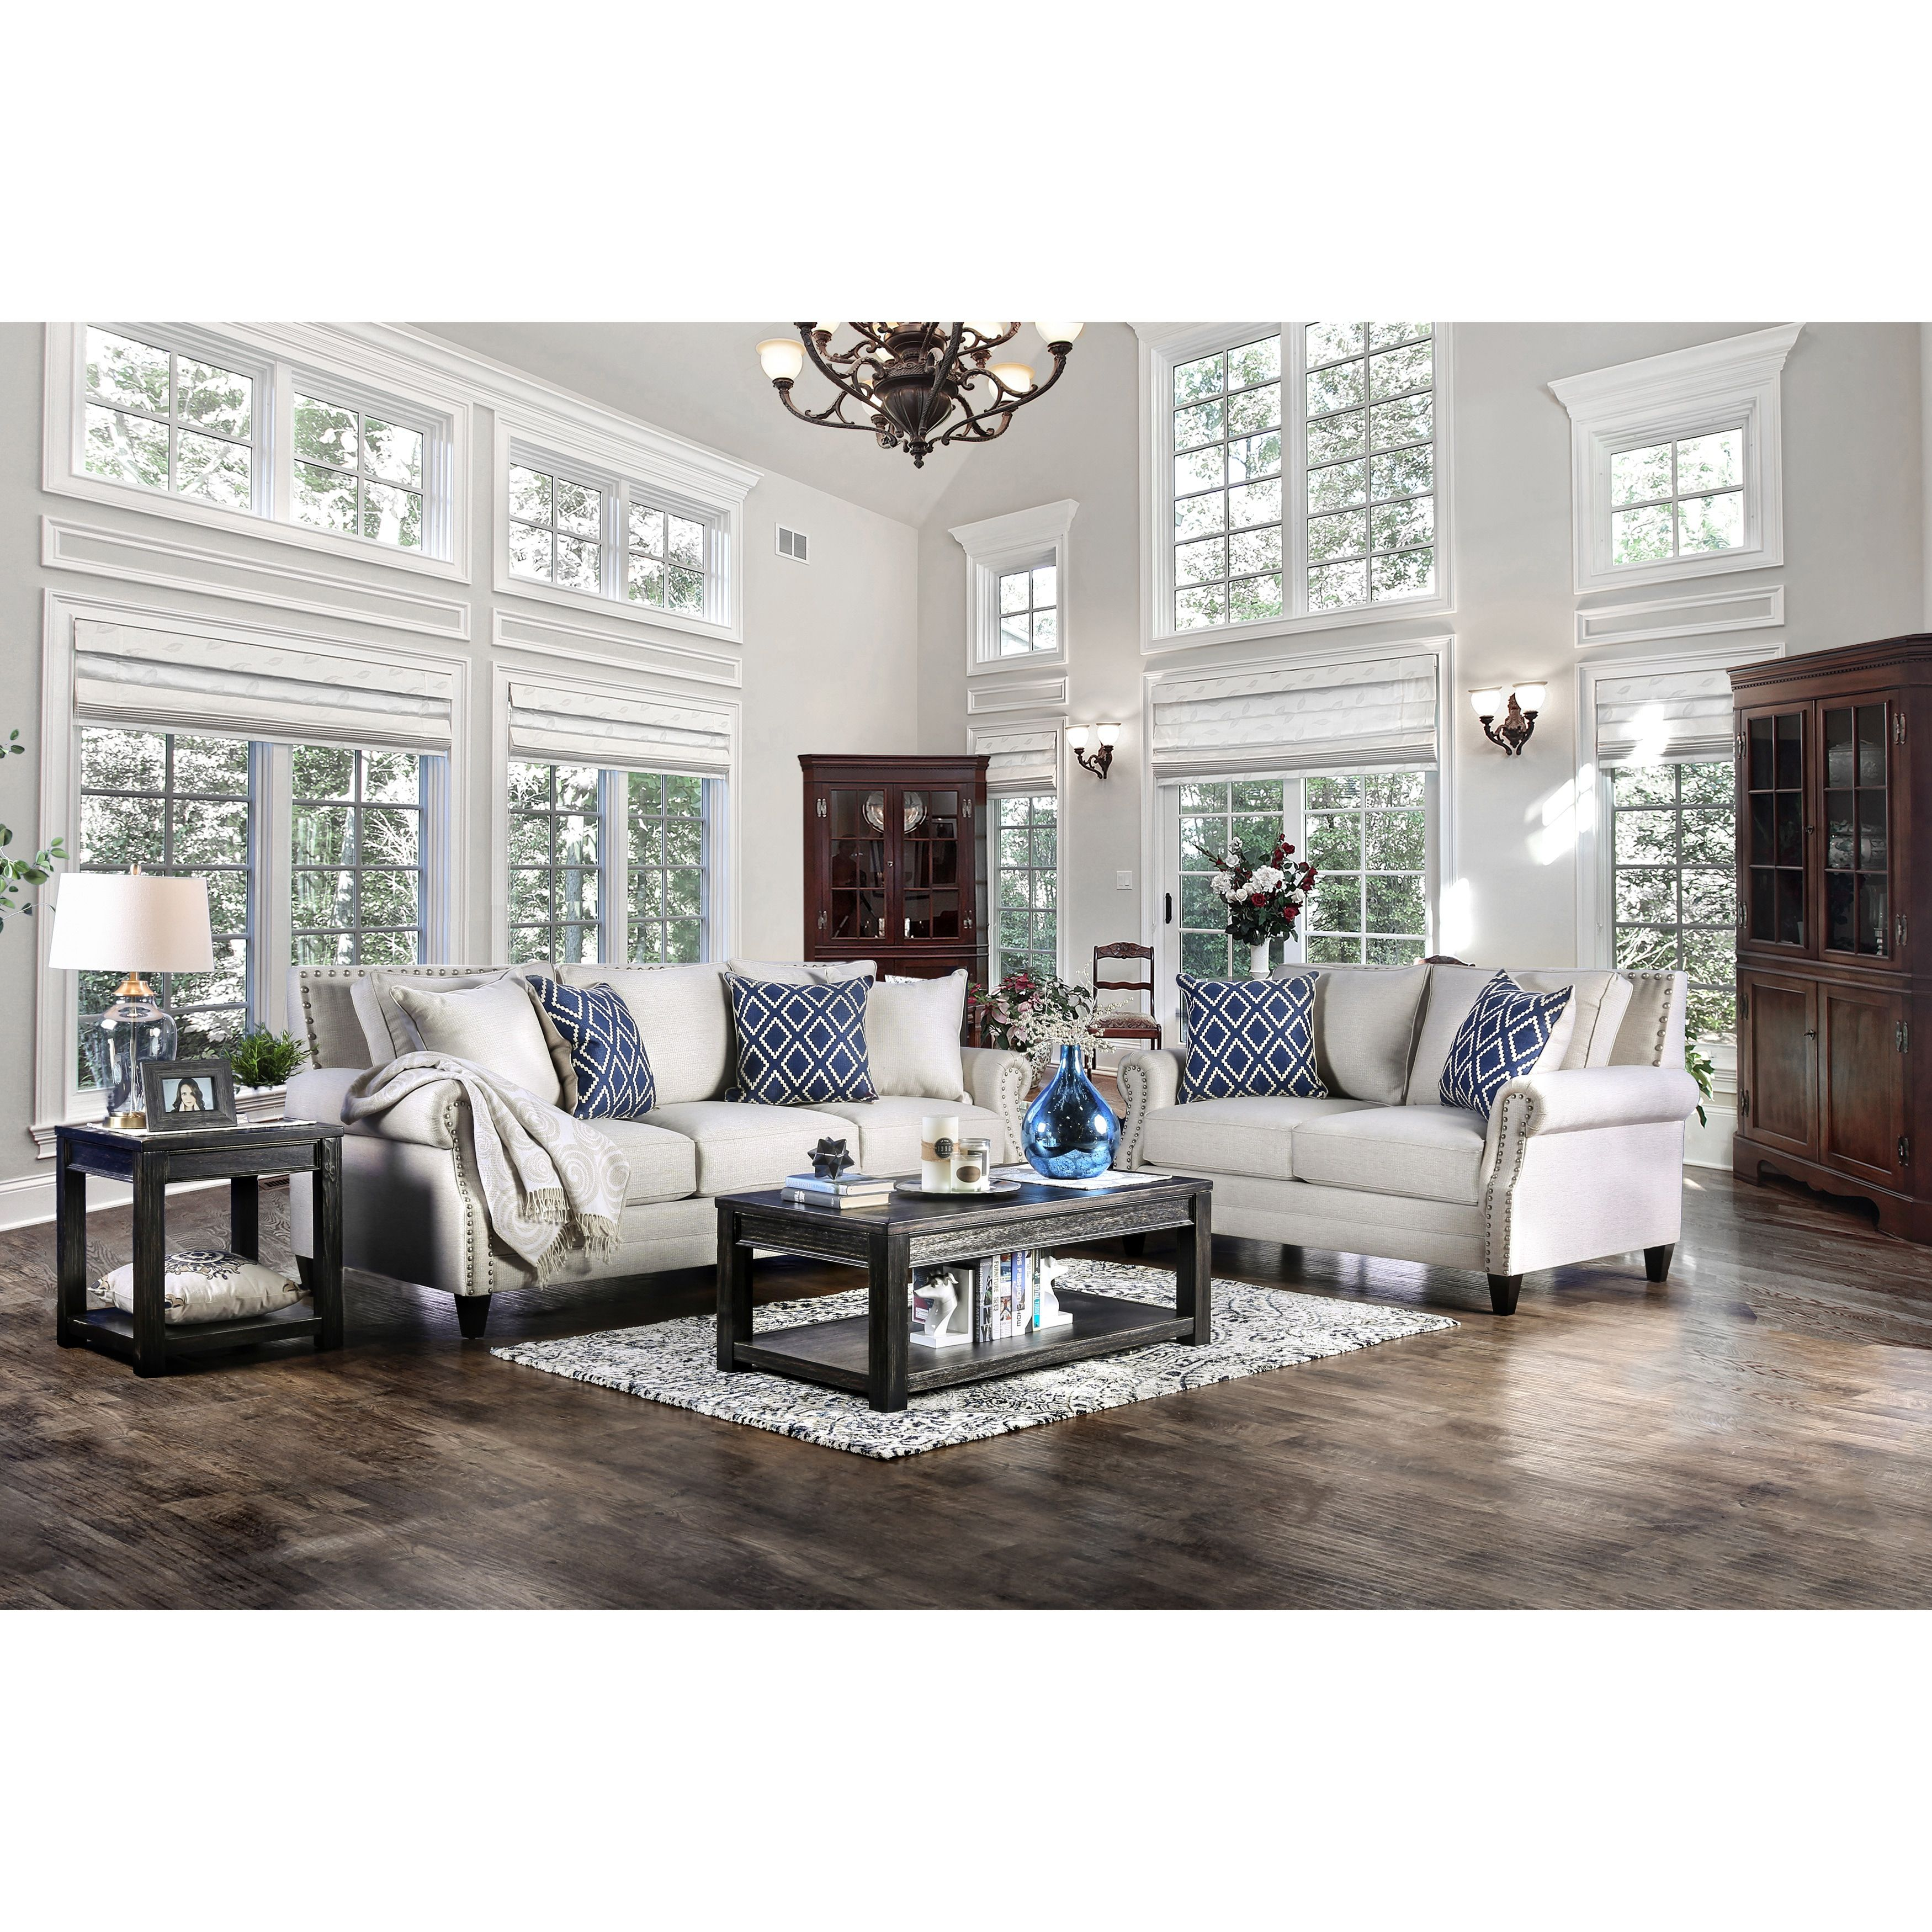 Overstock Com Online Shopping Bedding Furniture Electronics Jewelry Clothing More Living Room Collections Living Room Remodel Living Room Sets #overstockcom #living #room #furniture